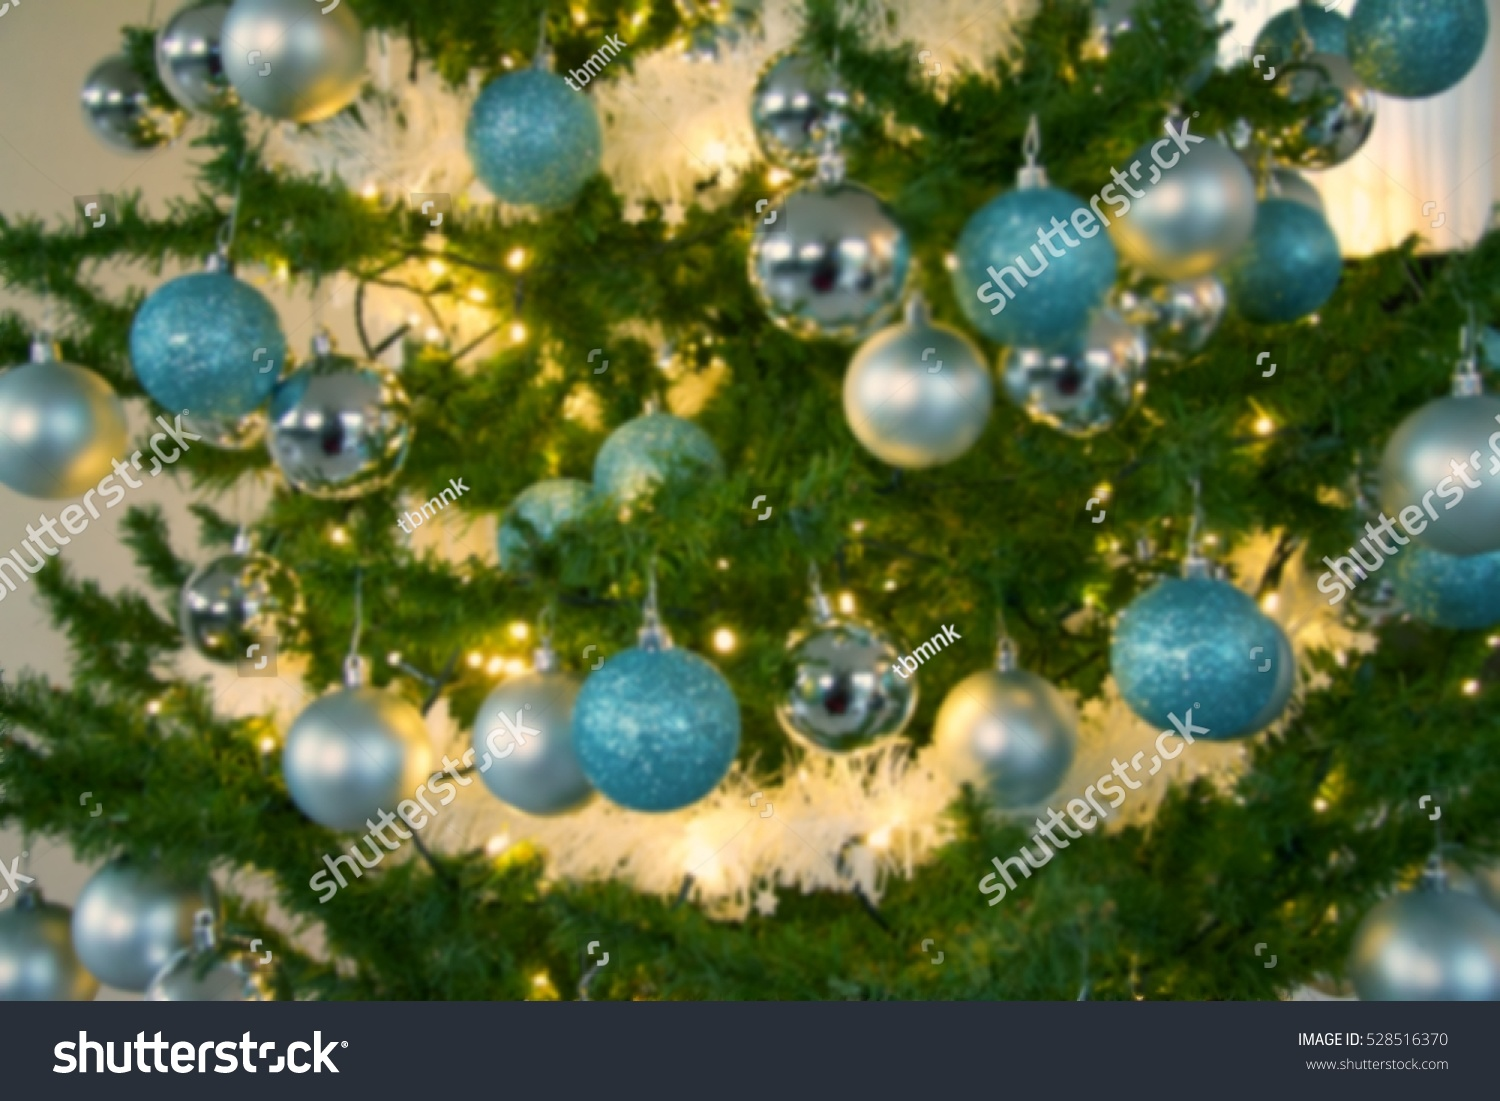 traditional decorated christmas tree in green colors with green and blue balls blurred background close up ez canvas - Green Christmas Tree With Blue Decorations